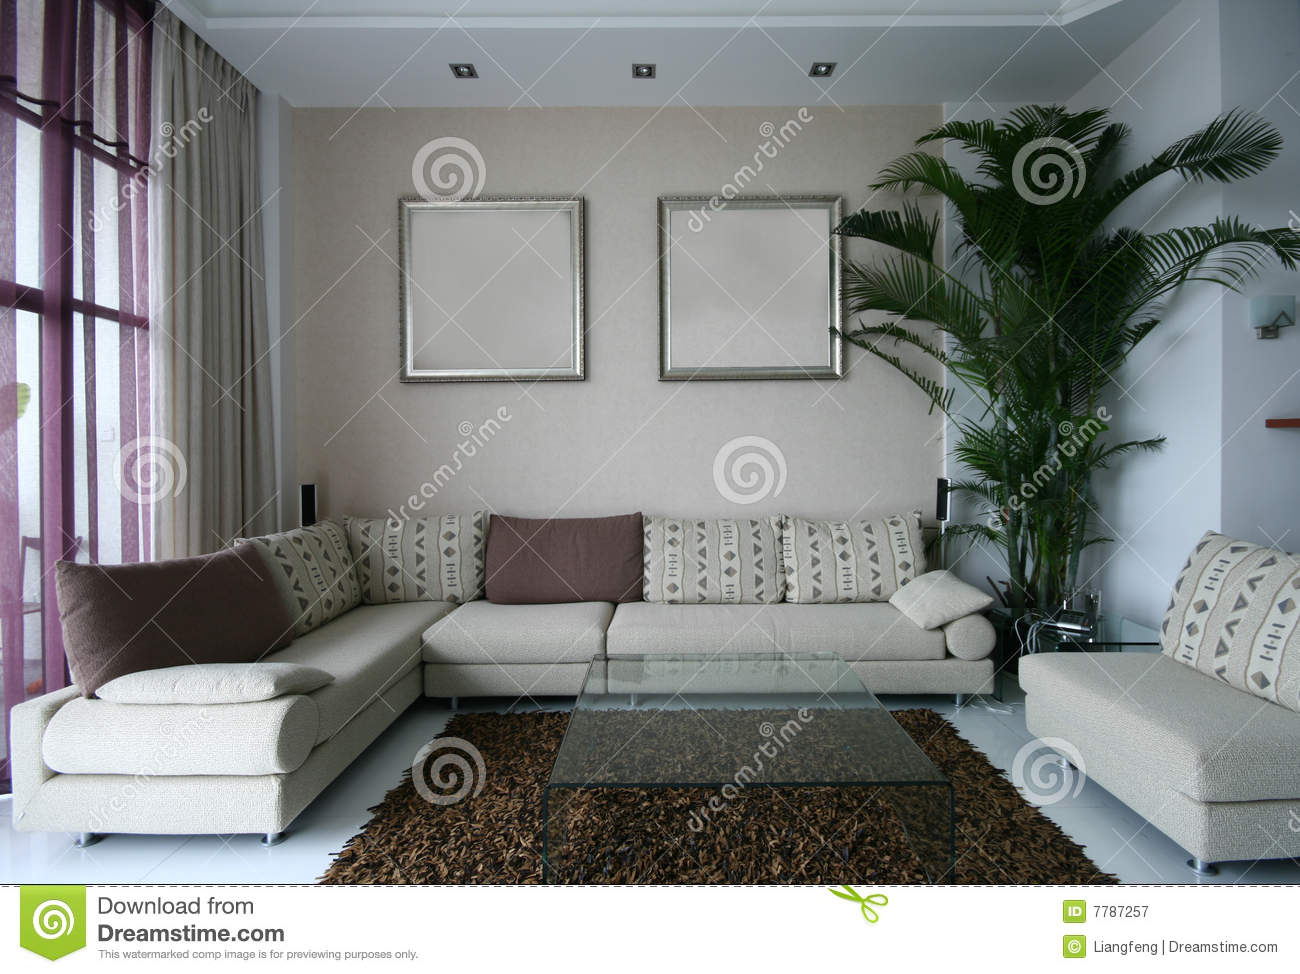 Good room decoration royalty free stock photography for Good decoration